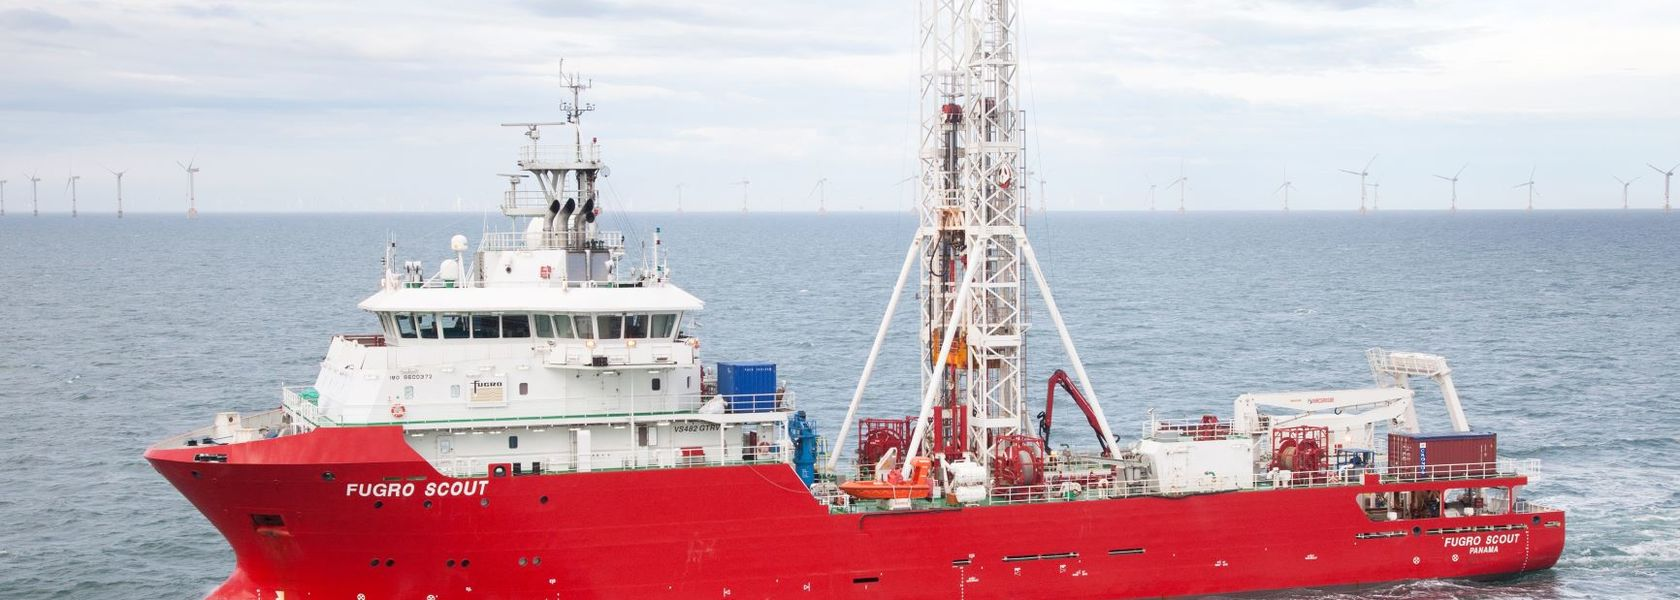 German coastal marine site characterisation project for Fugro